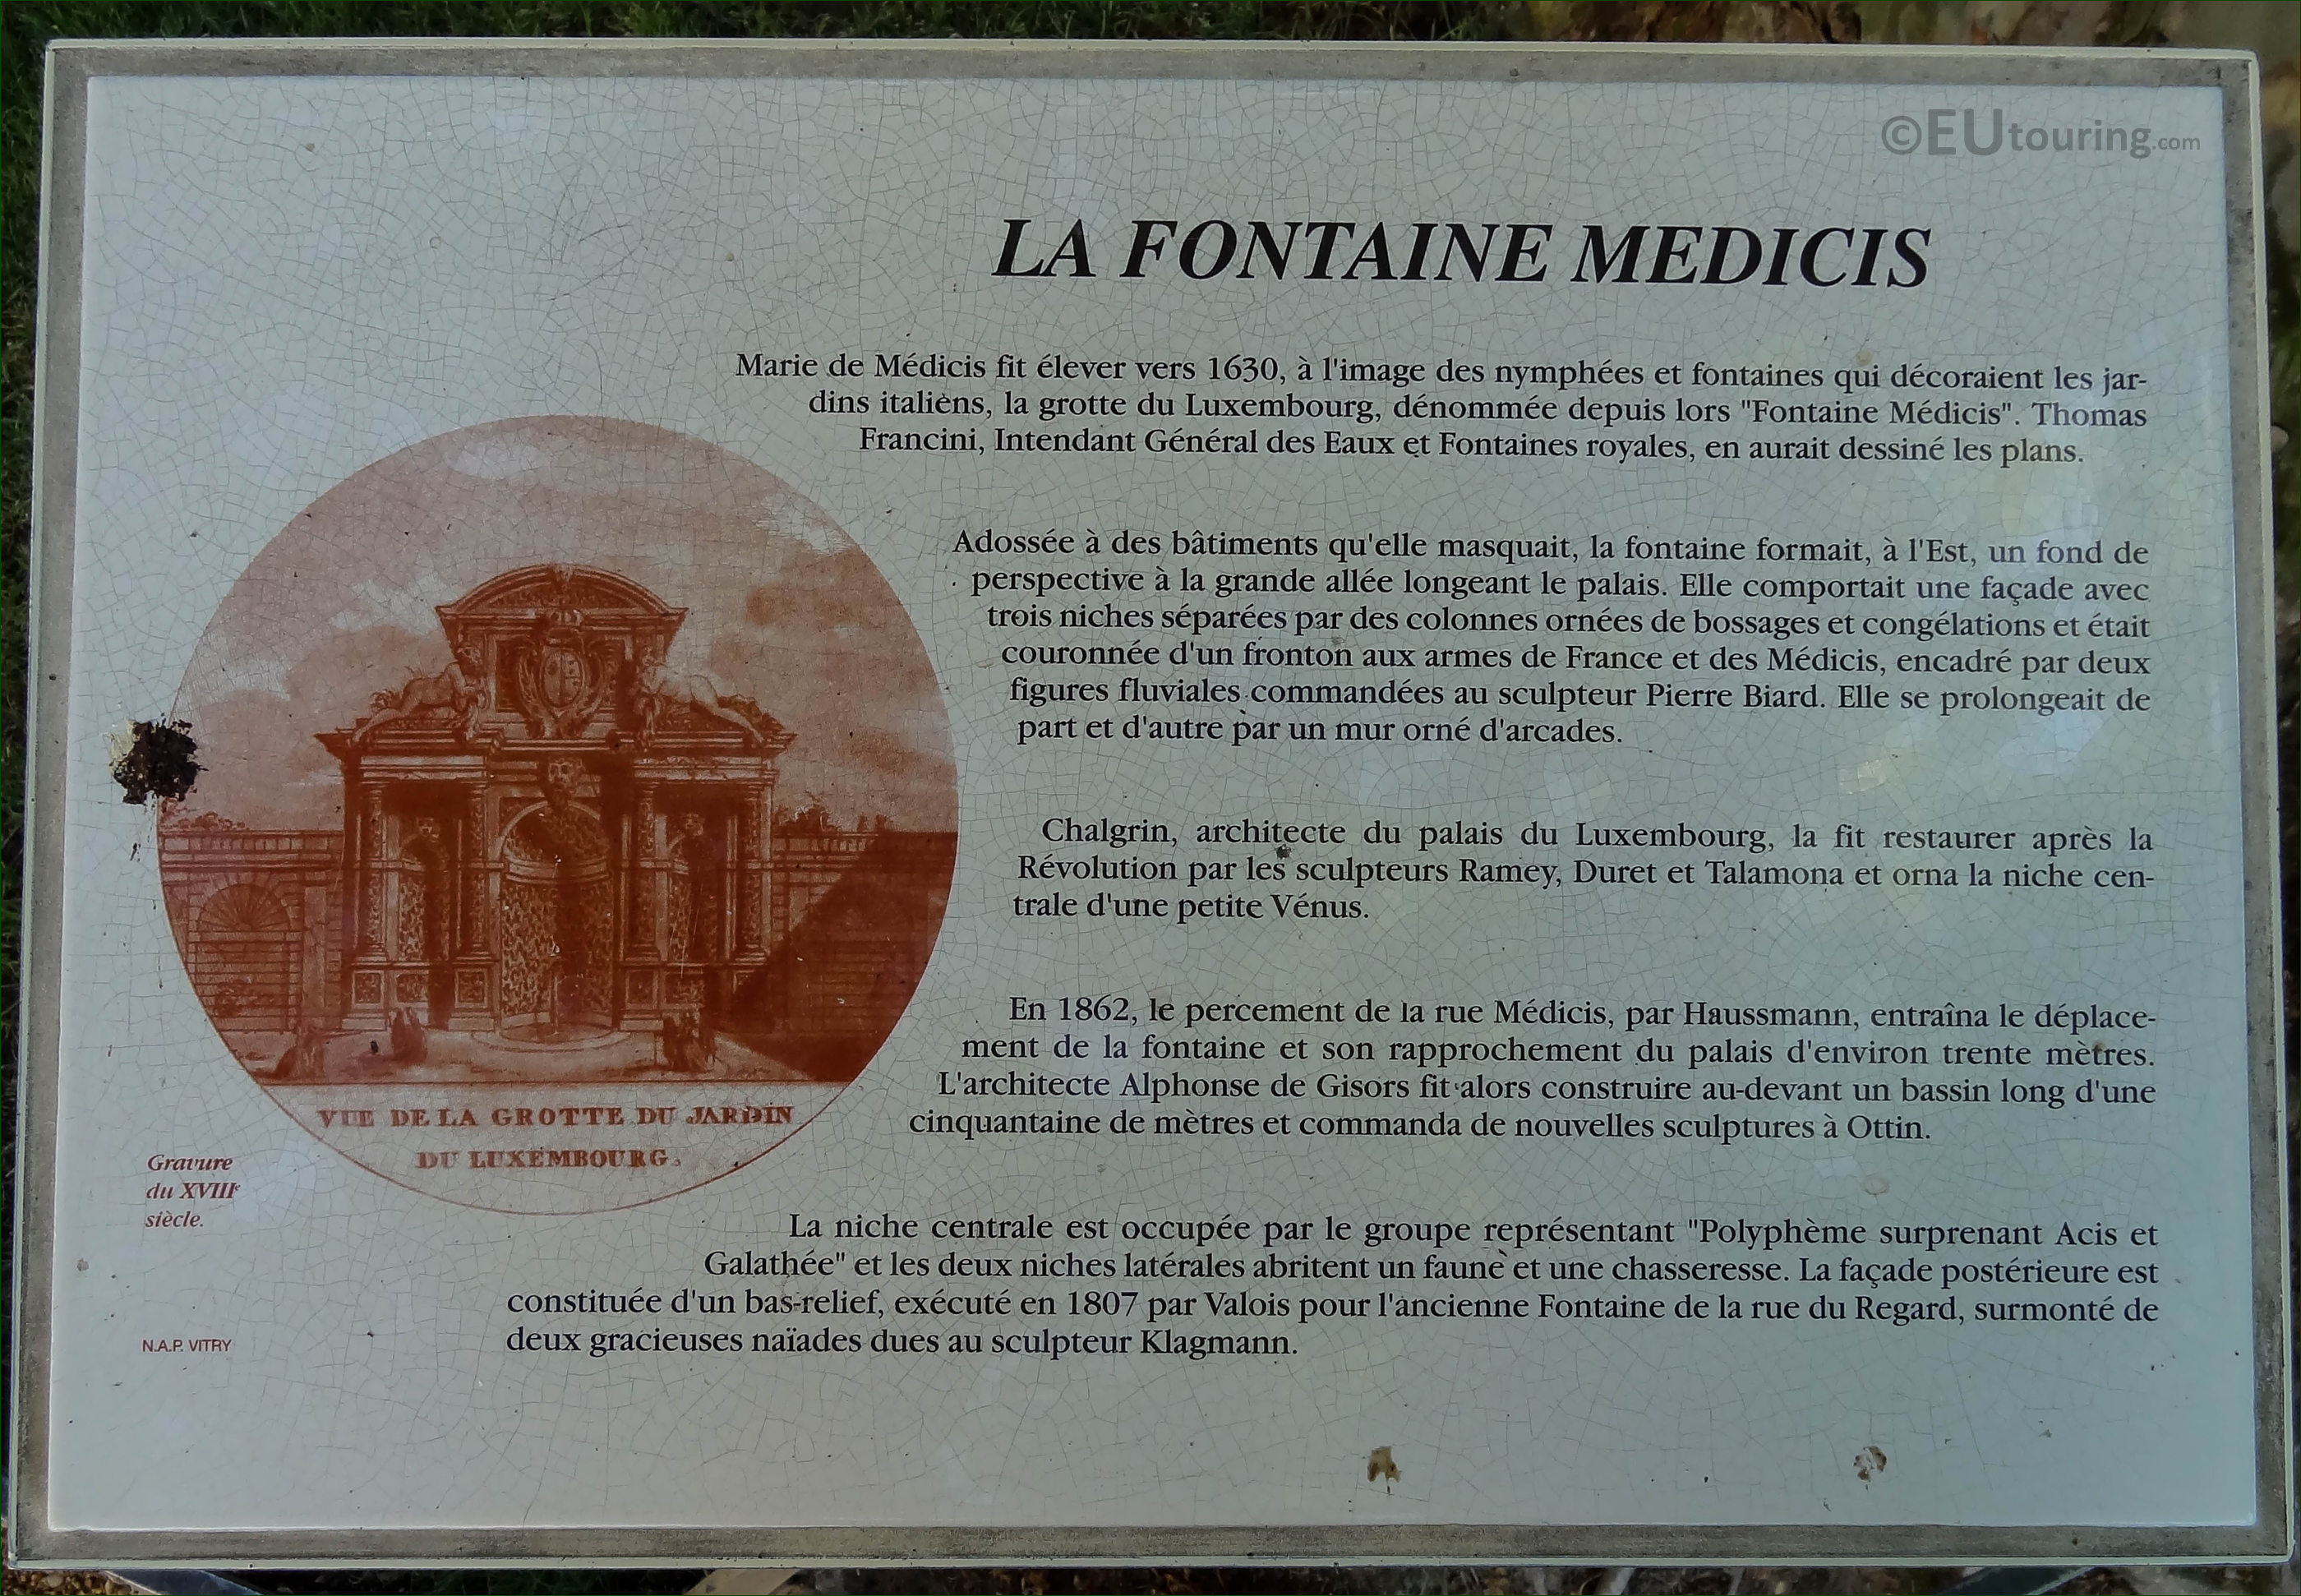 Photos of Fontaine Medicis in Jardin du Luxembourg - Page 3